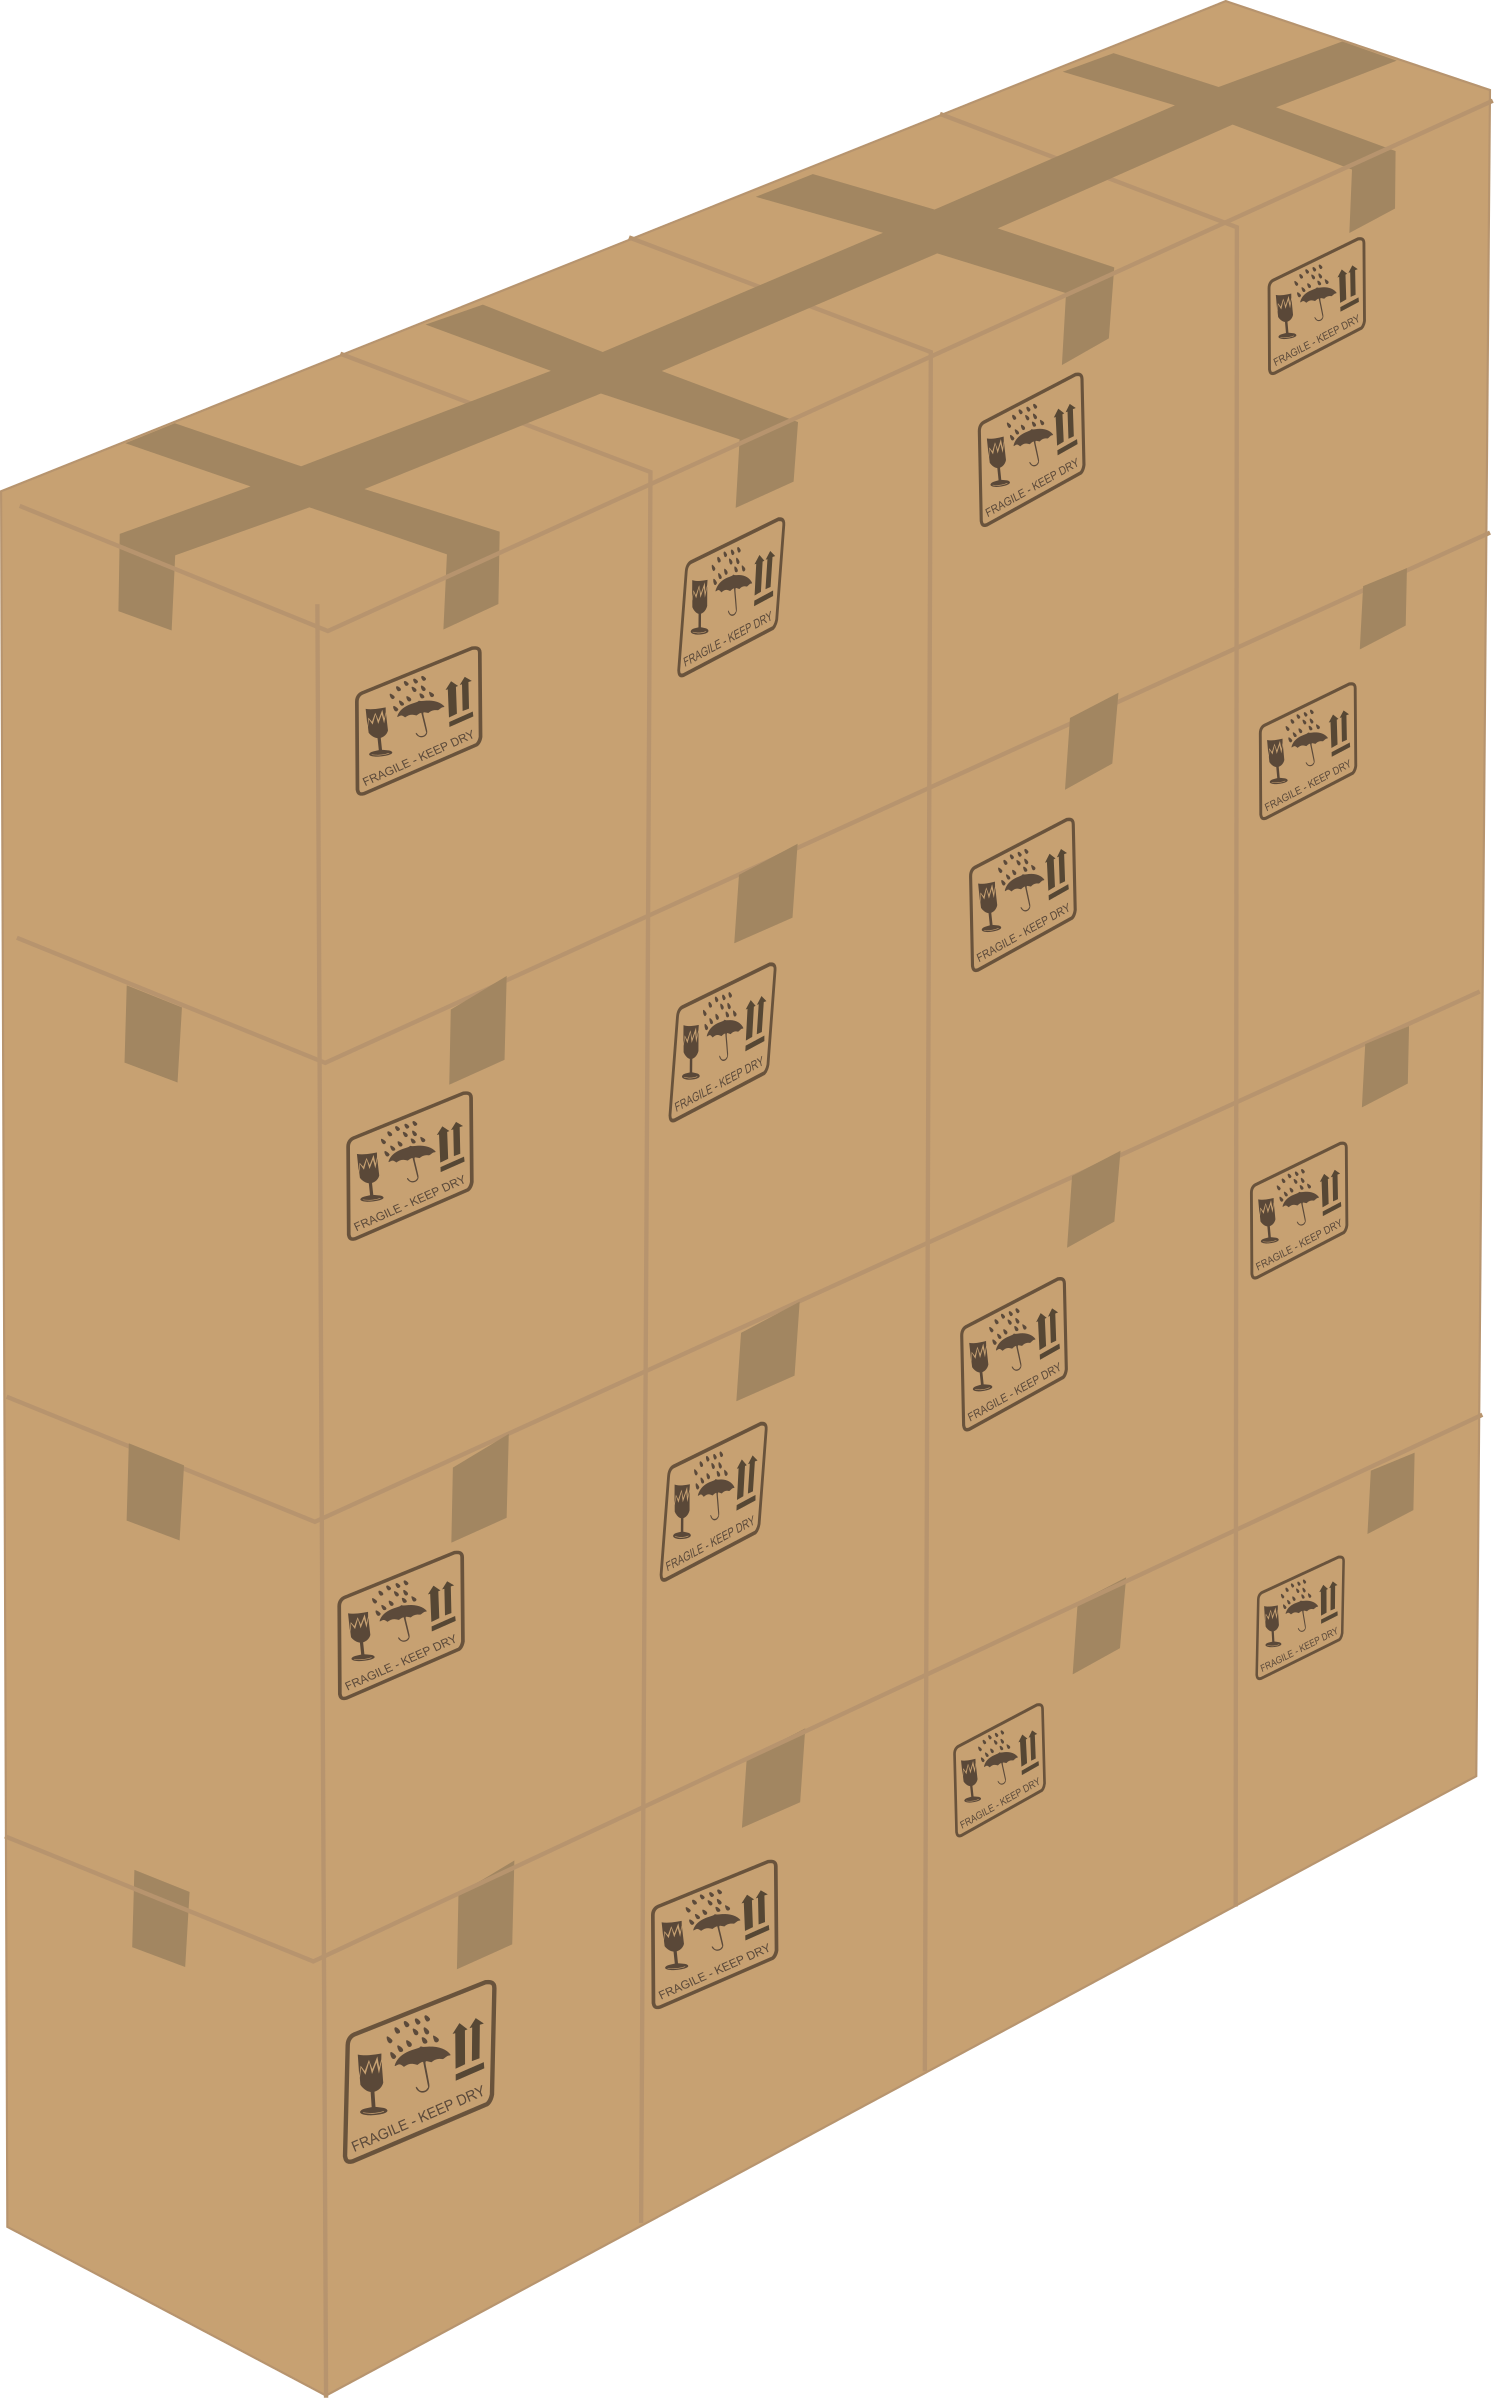 Box wall by Rfc1394